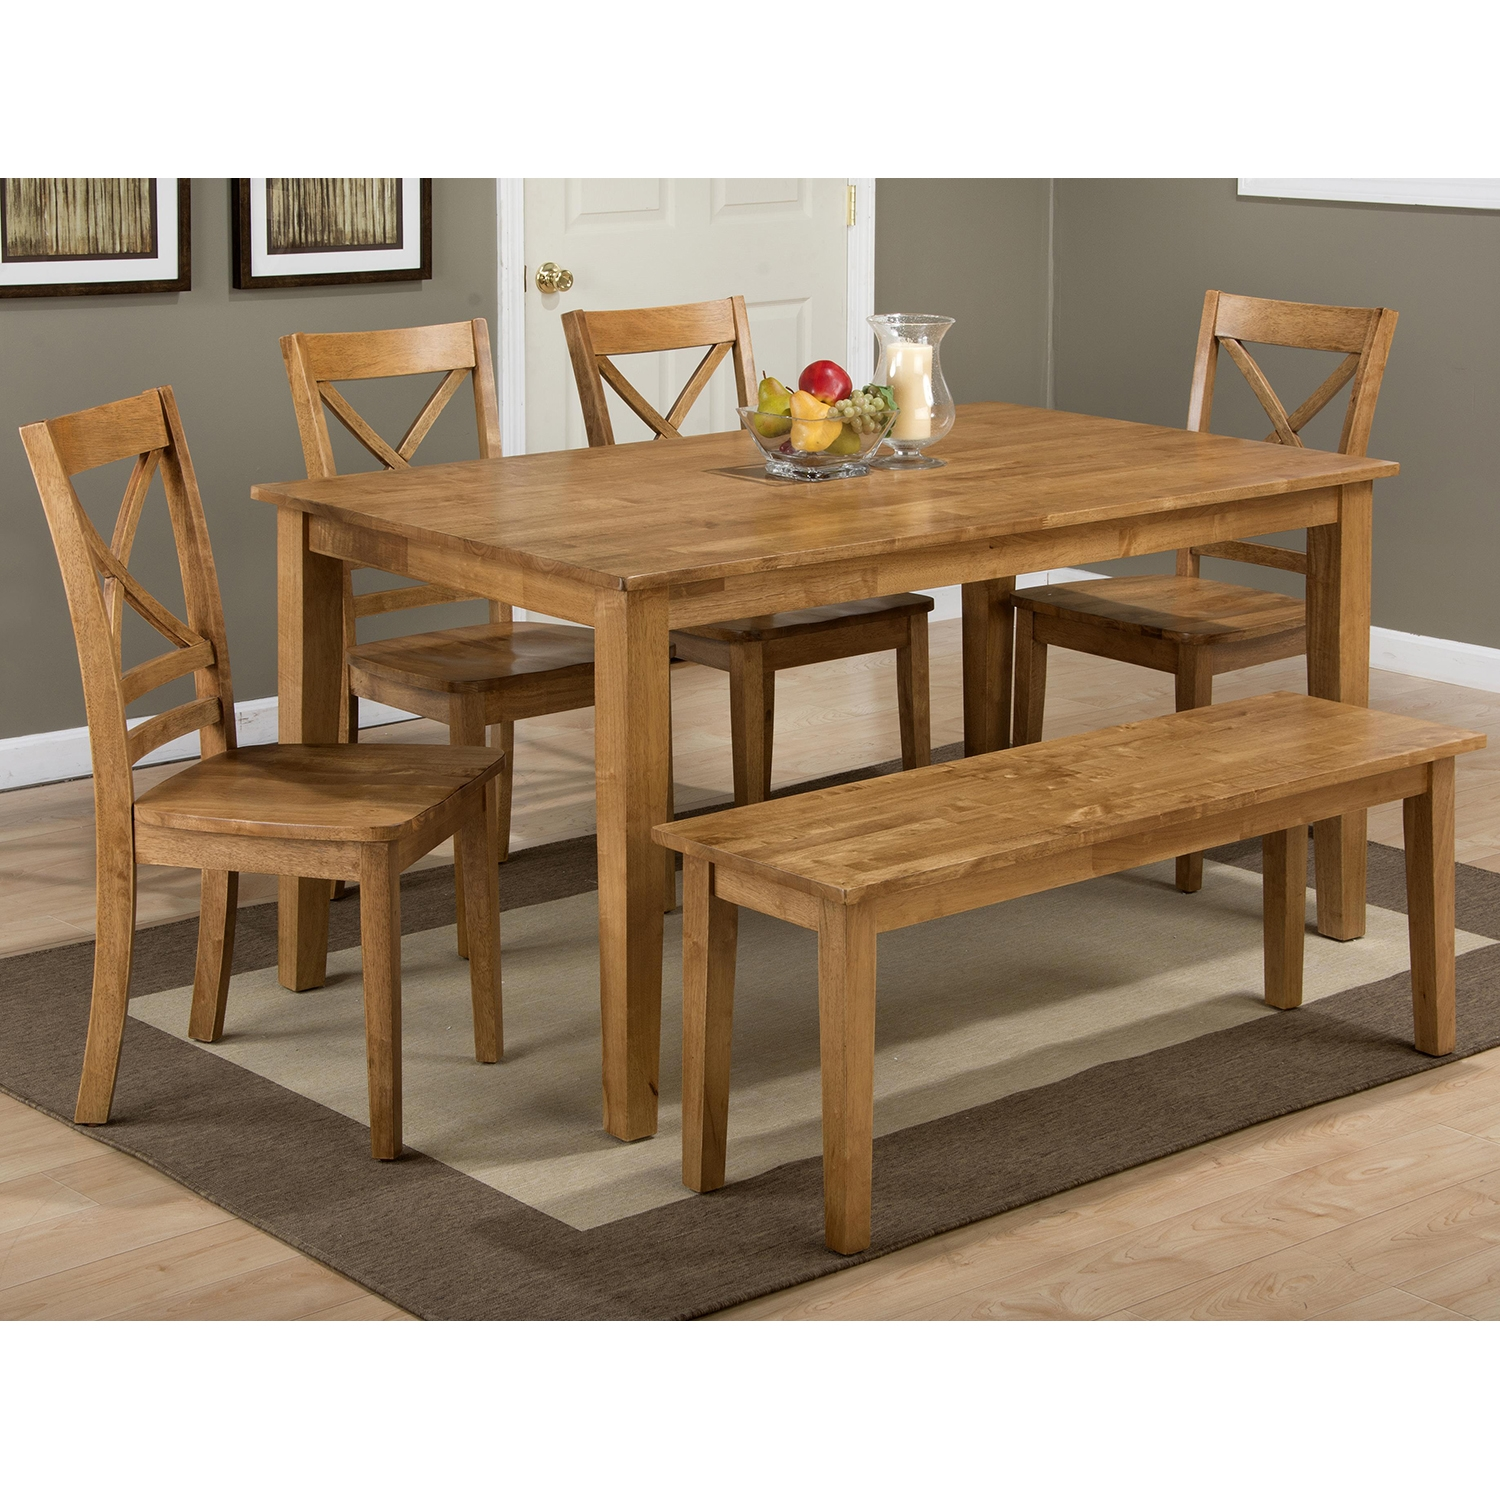 Simplicity 5 Pieces Dining Set - Rectangle Table, X Back Chair, Honey - JOFR-352-60-806KD-SET